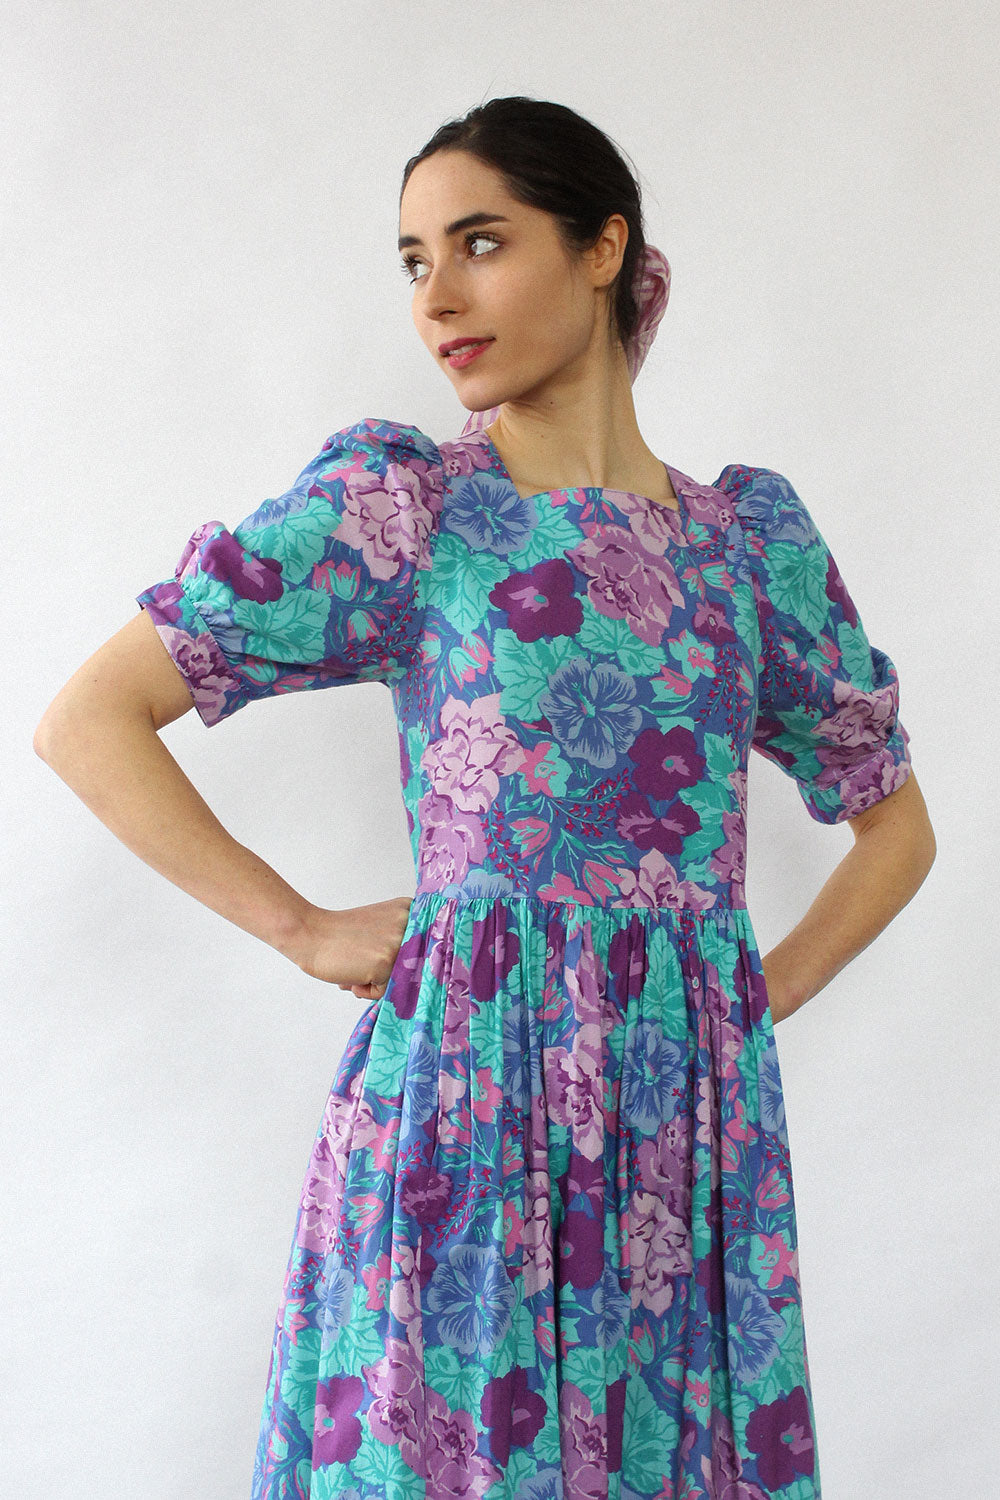 Laura Ashley Teal Floral Dress XS/S